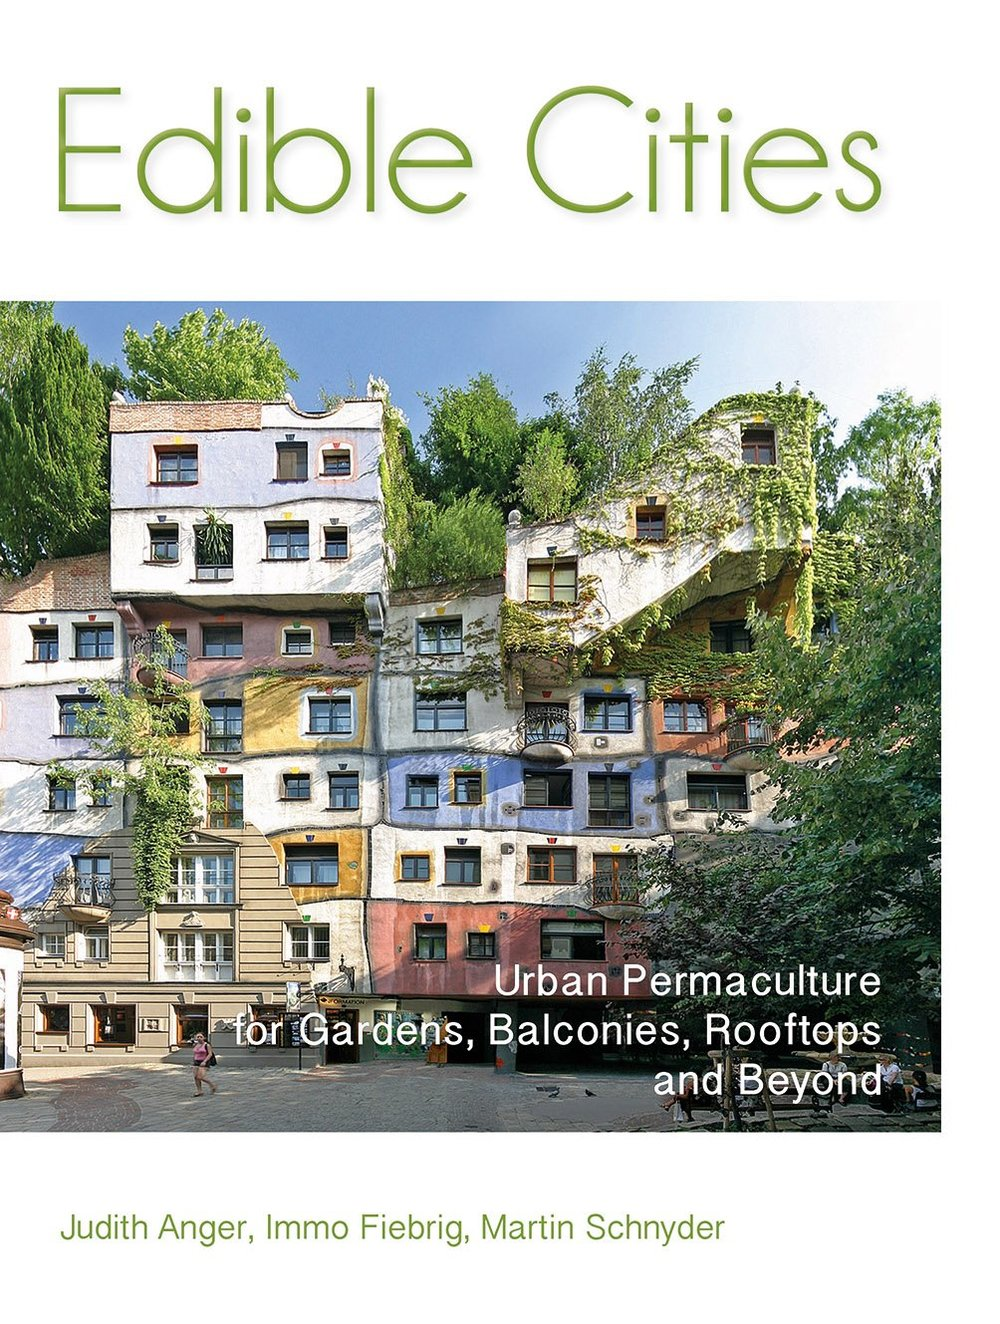 Edible Cities,   Urban Permaculture for Gardens, Yards, Balconies, Rooftops and Beyond   Judith Anger, Immo Fieberg, Martin Schneider.